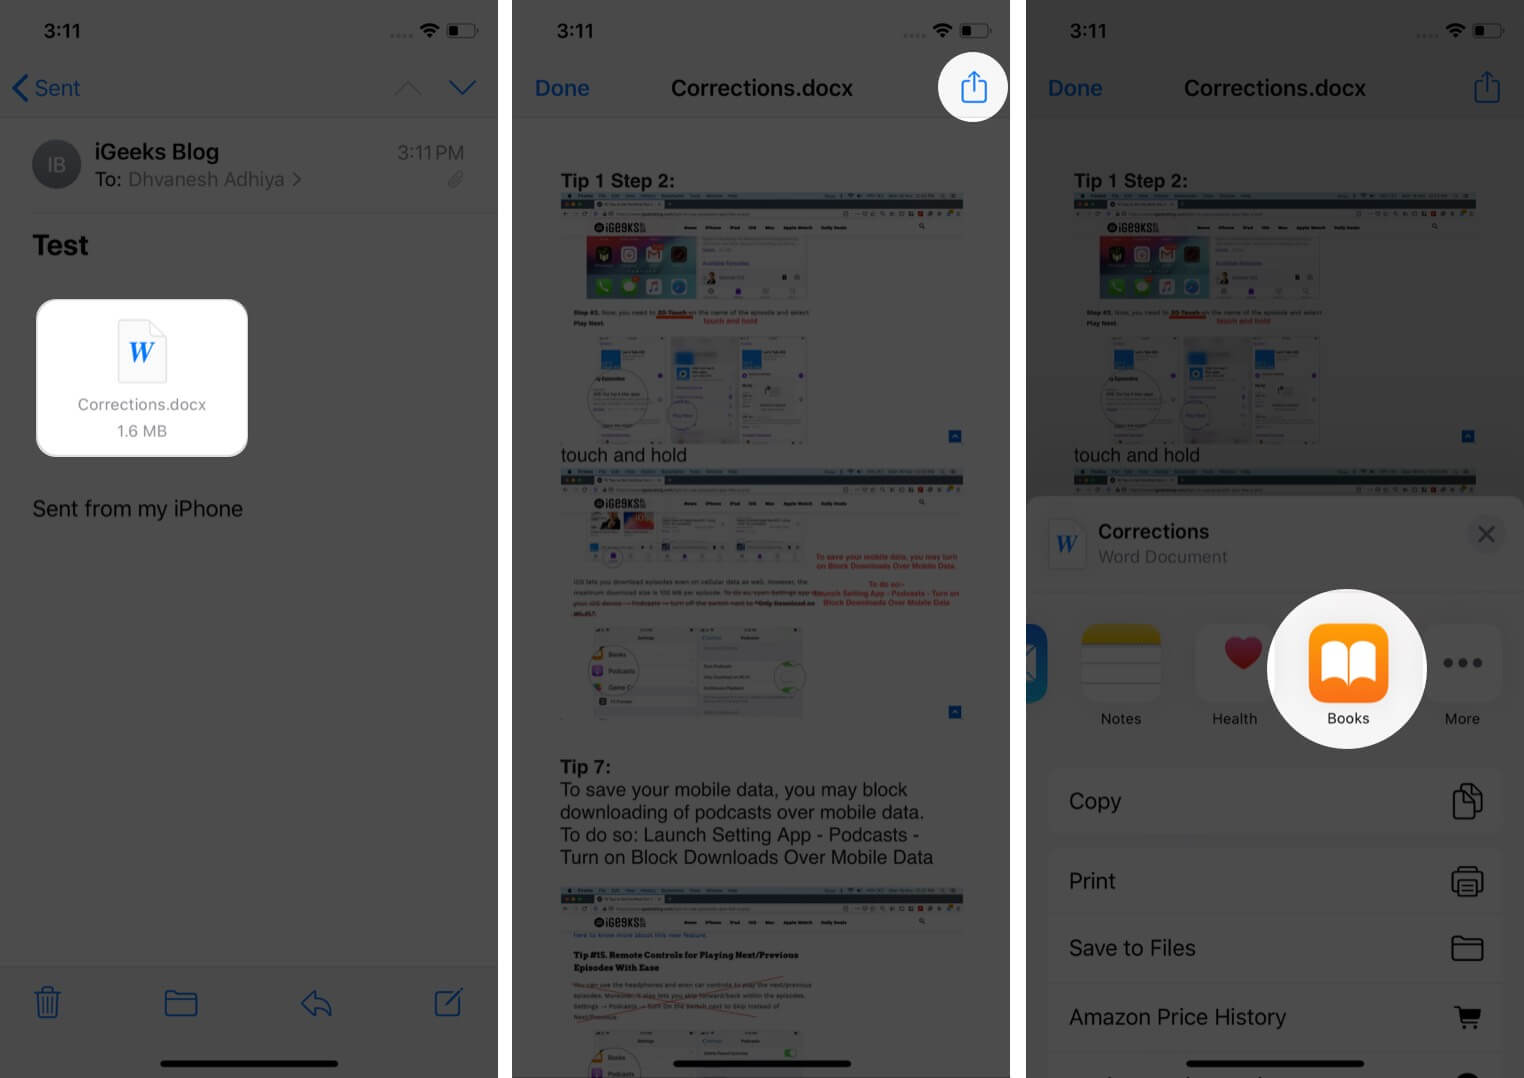 create pdf from mail attachment to books app on iphone